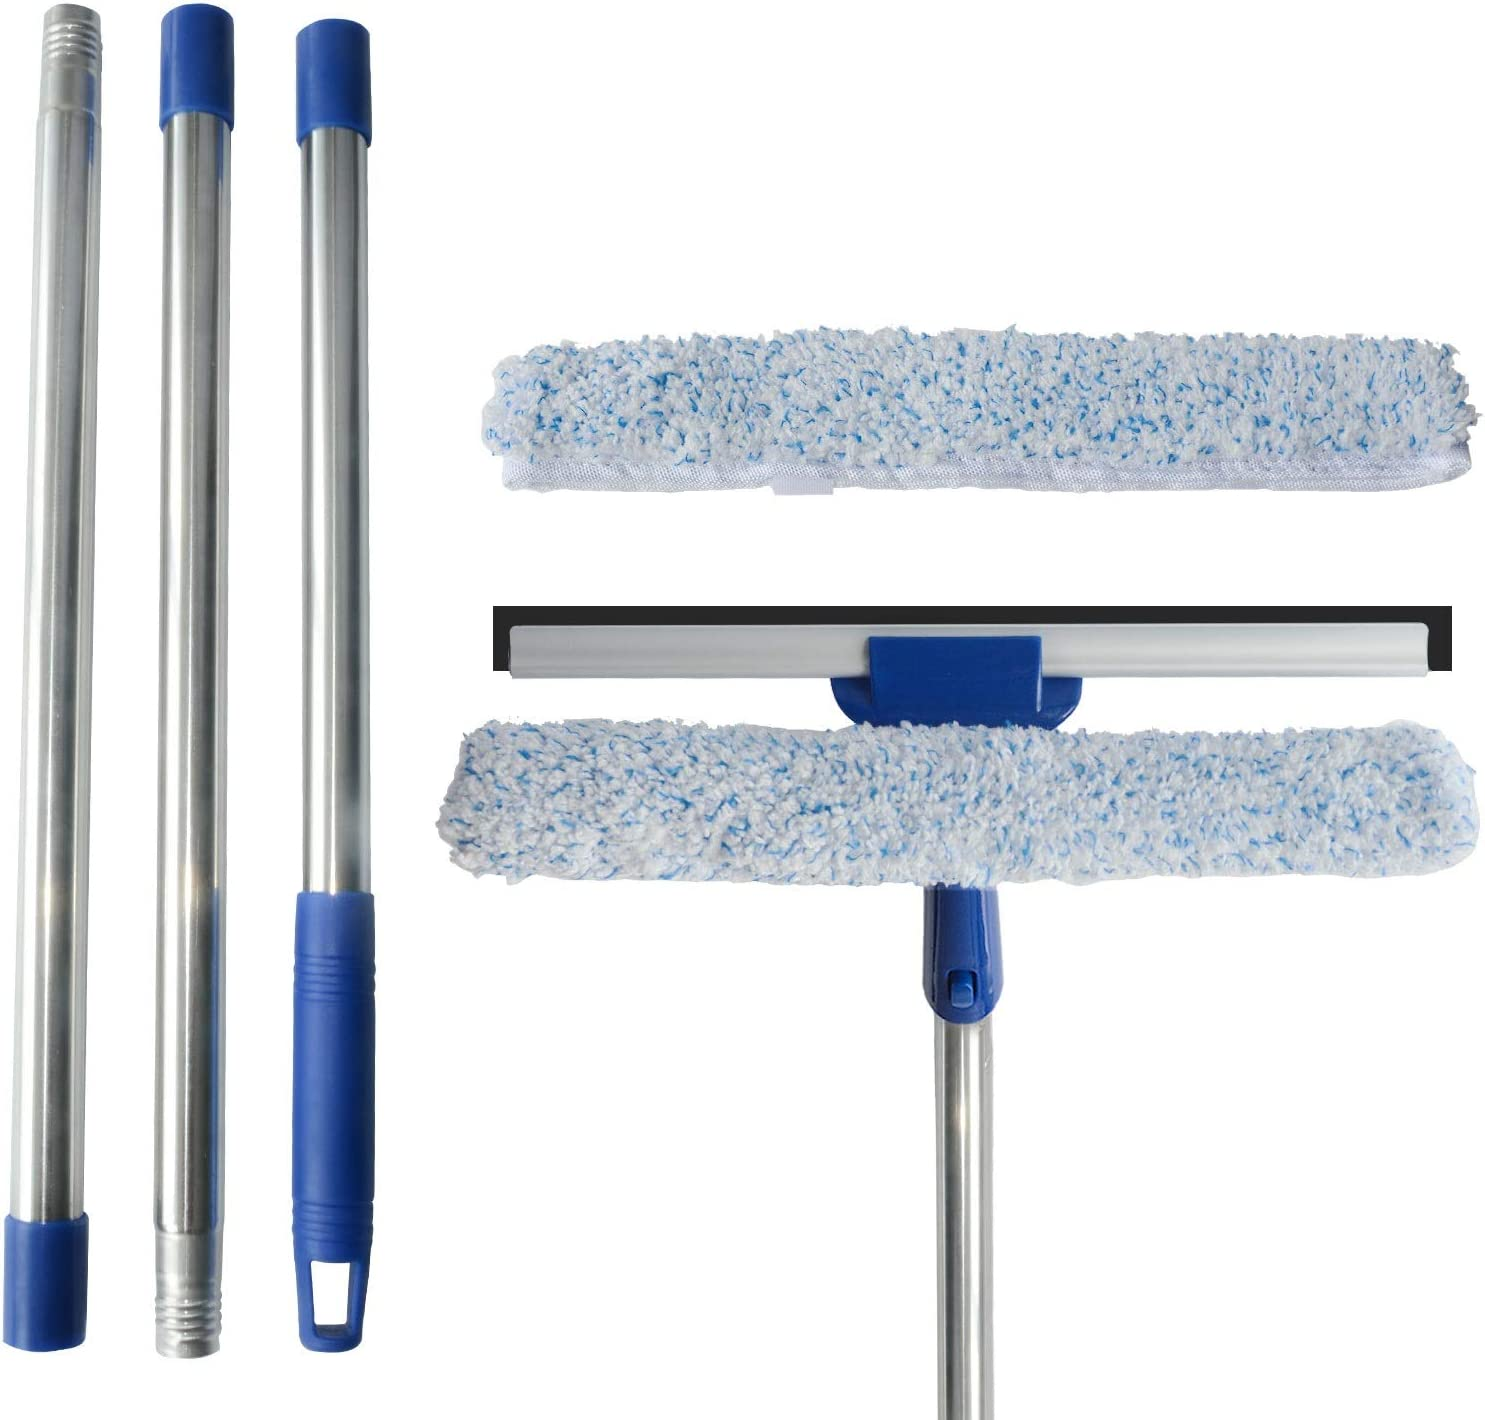 ITTAR Window Squeegee Cleaning Tools, 2 in 1 Window Washing Squeegee with Extension Pole 58'' Long Handle for Window Shower Glass Door Household Tool